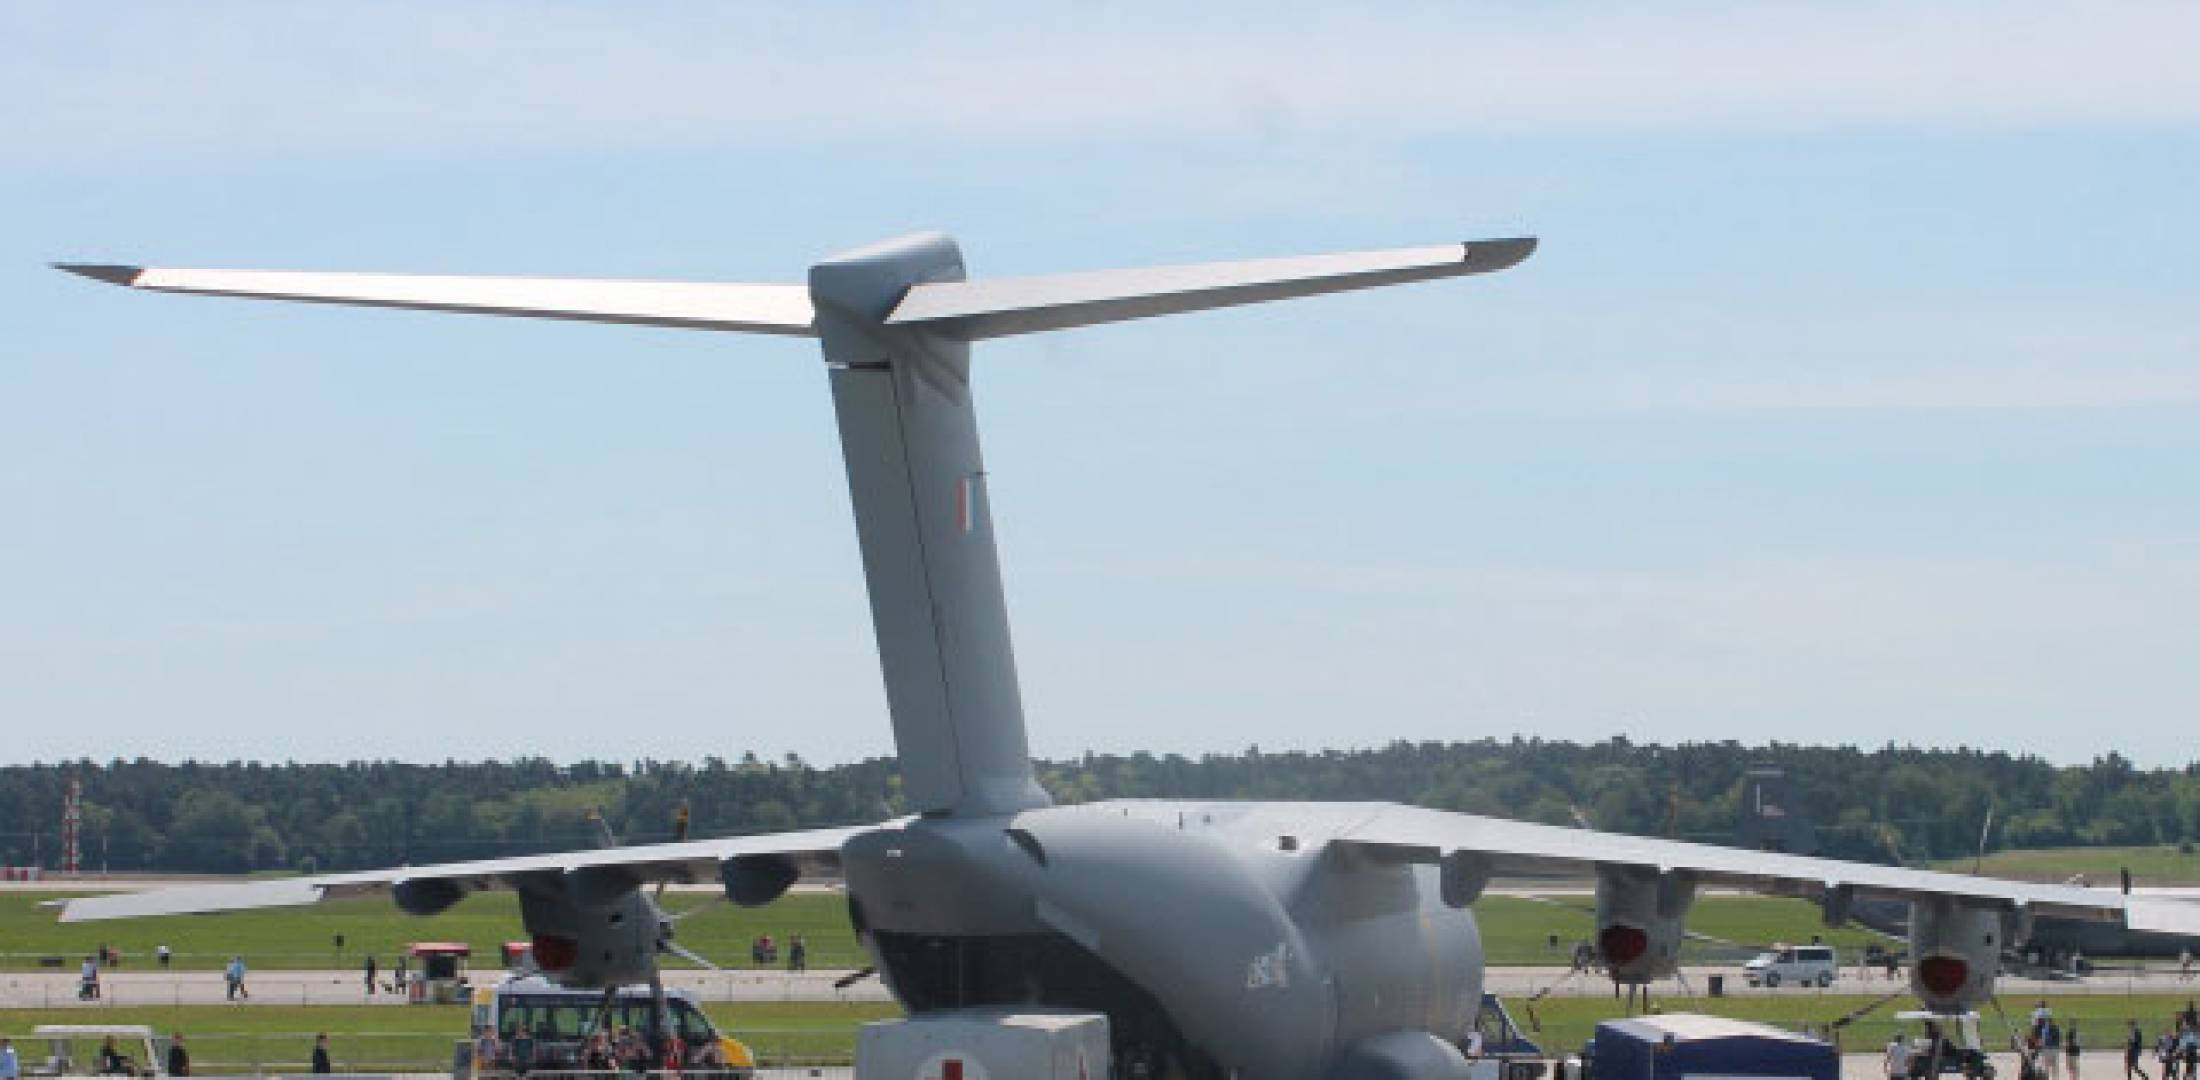 A400M airlifter